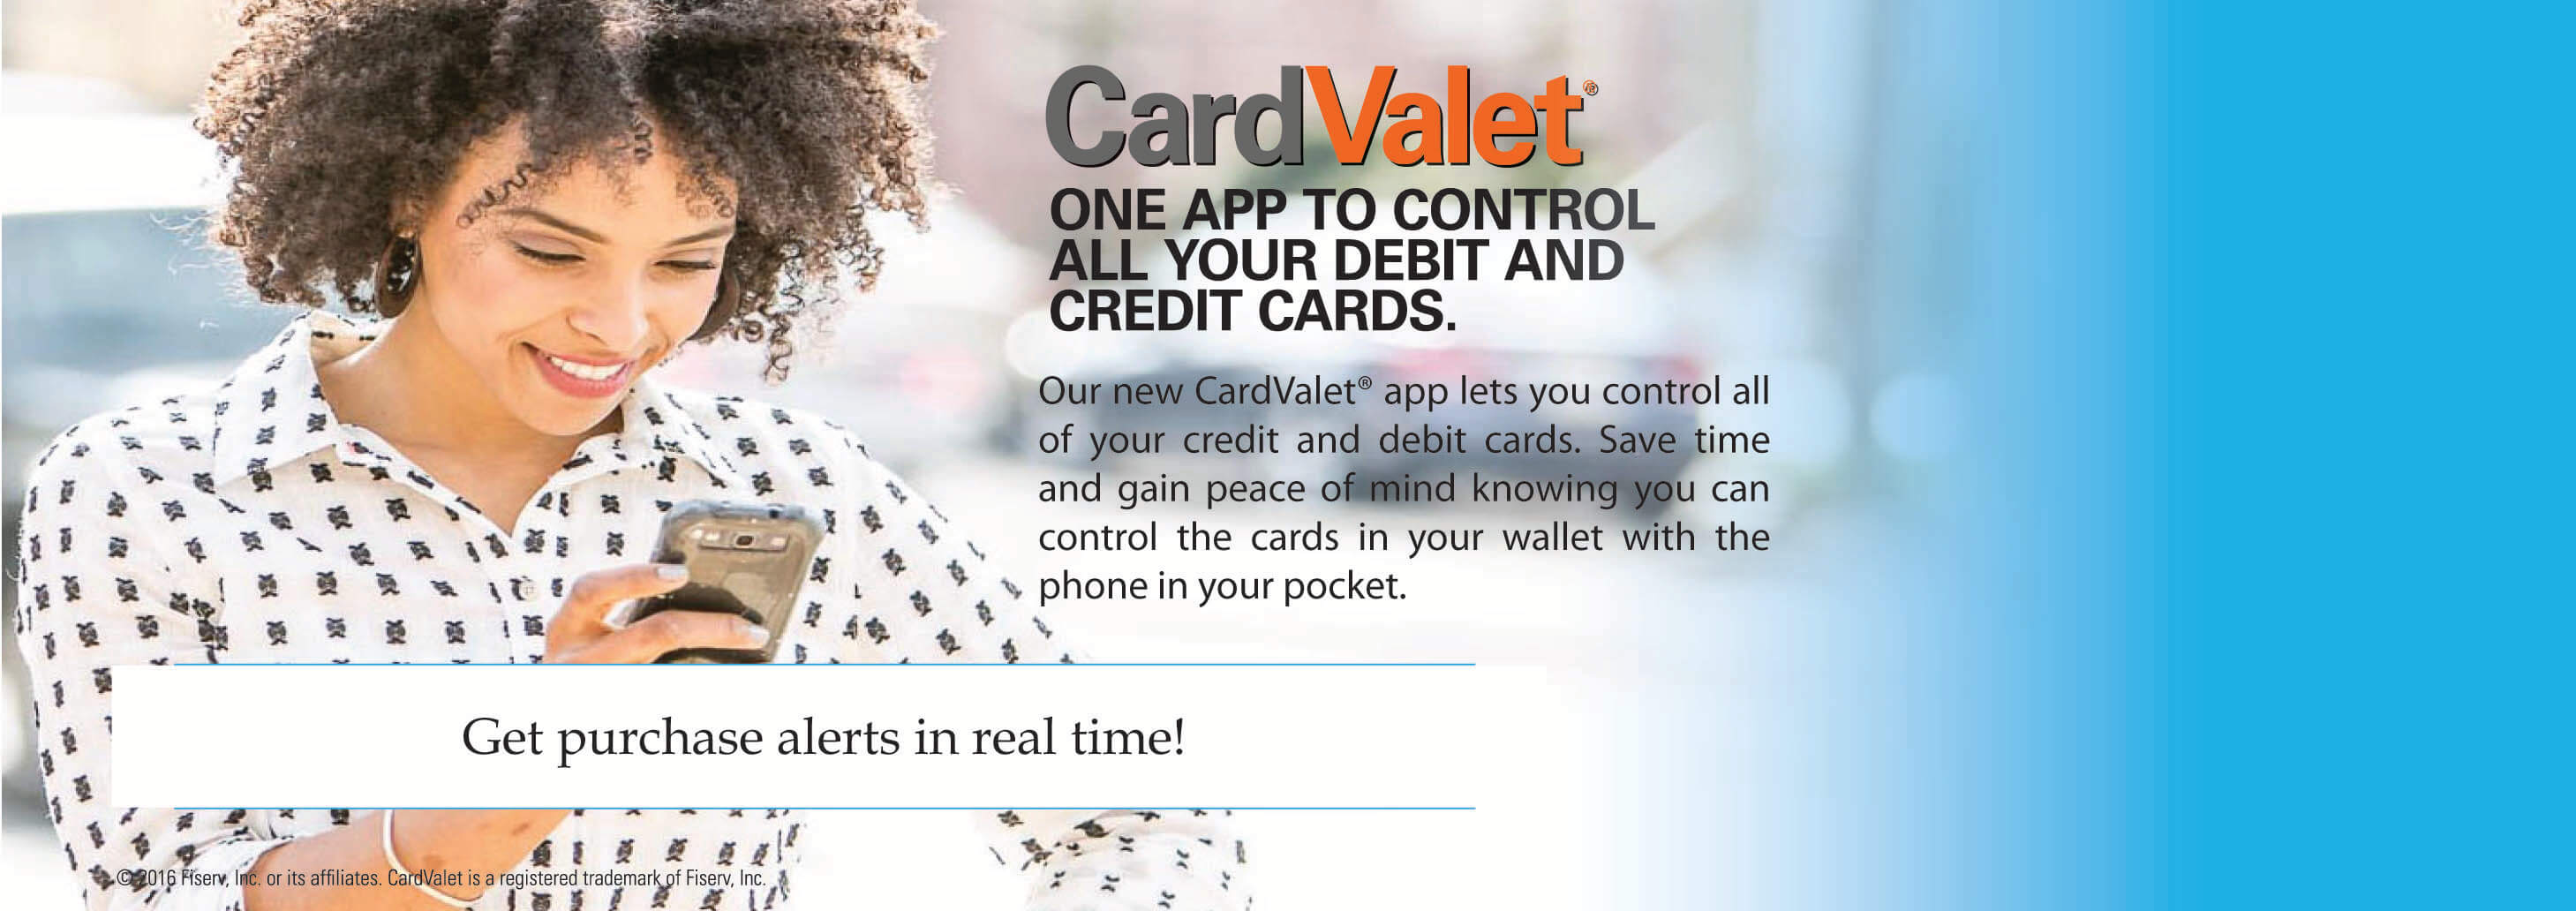 CardValet helps you control your credit and debit cards